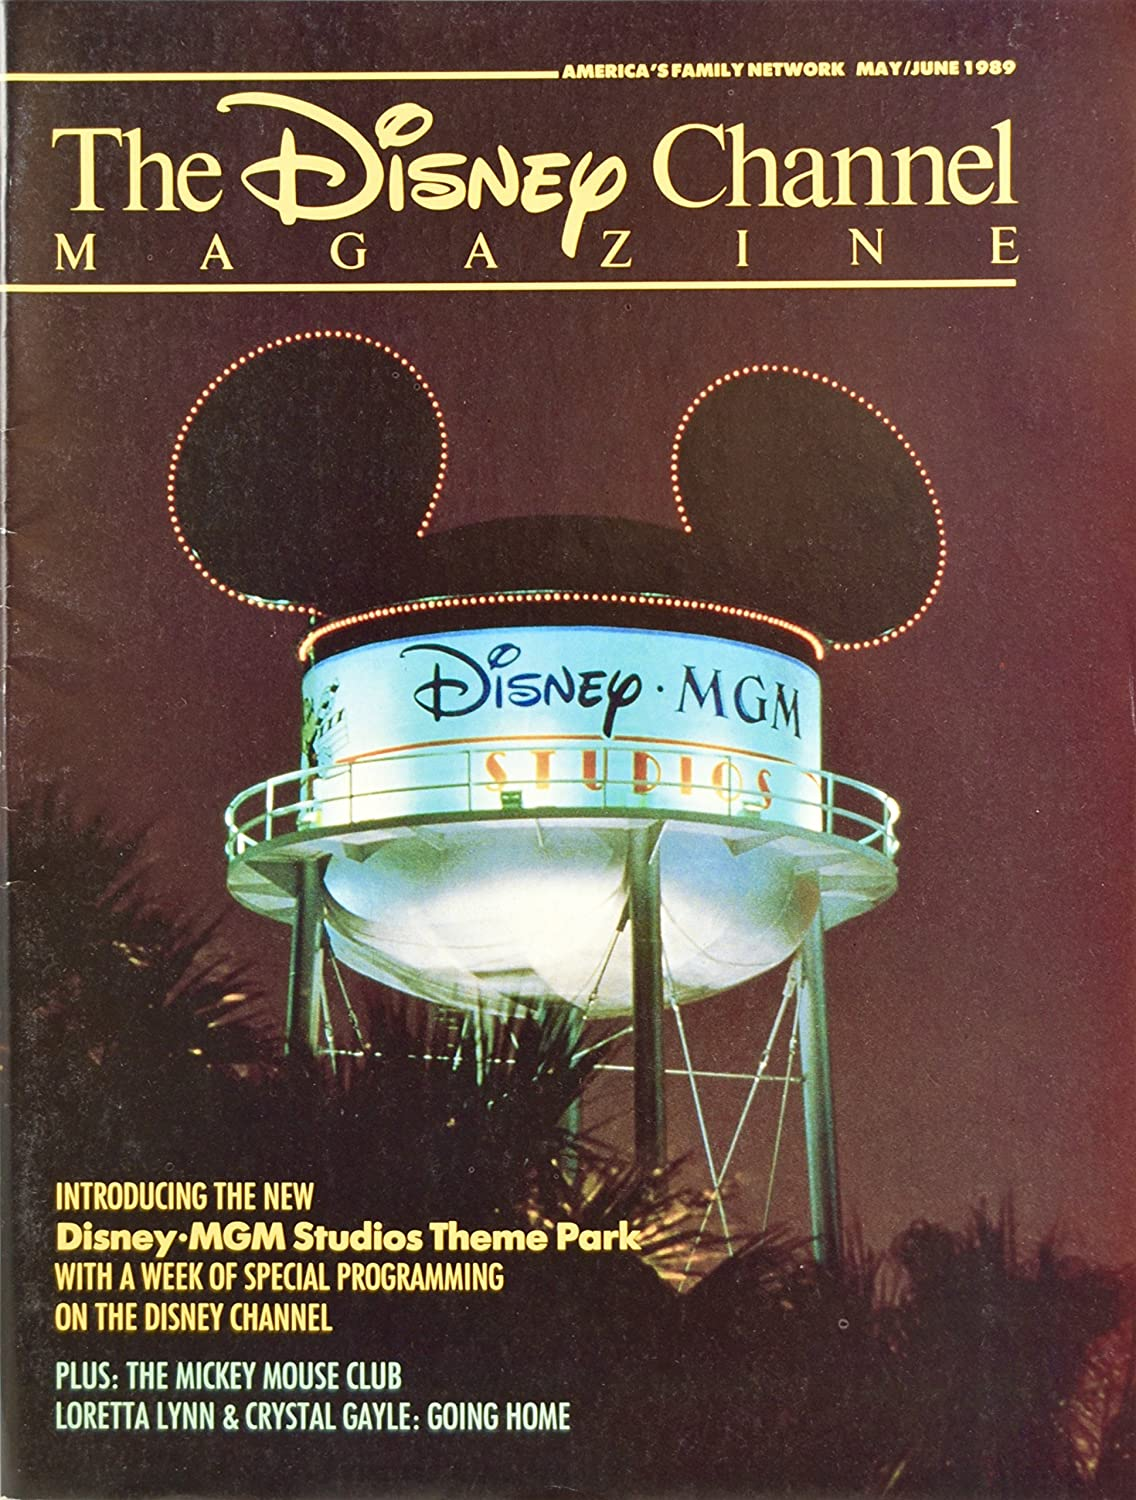 1989 - May / June - The Disney Channel - The New Disney-MGM Studios Theme Park / Mickey Mouse Club - OOP - New - Very Rare - Highly Collectible